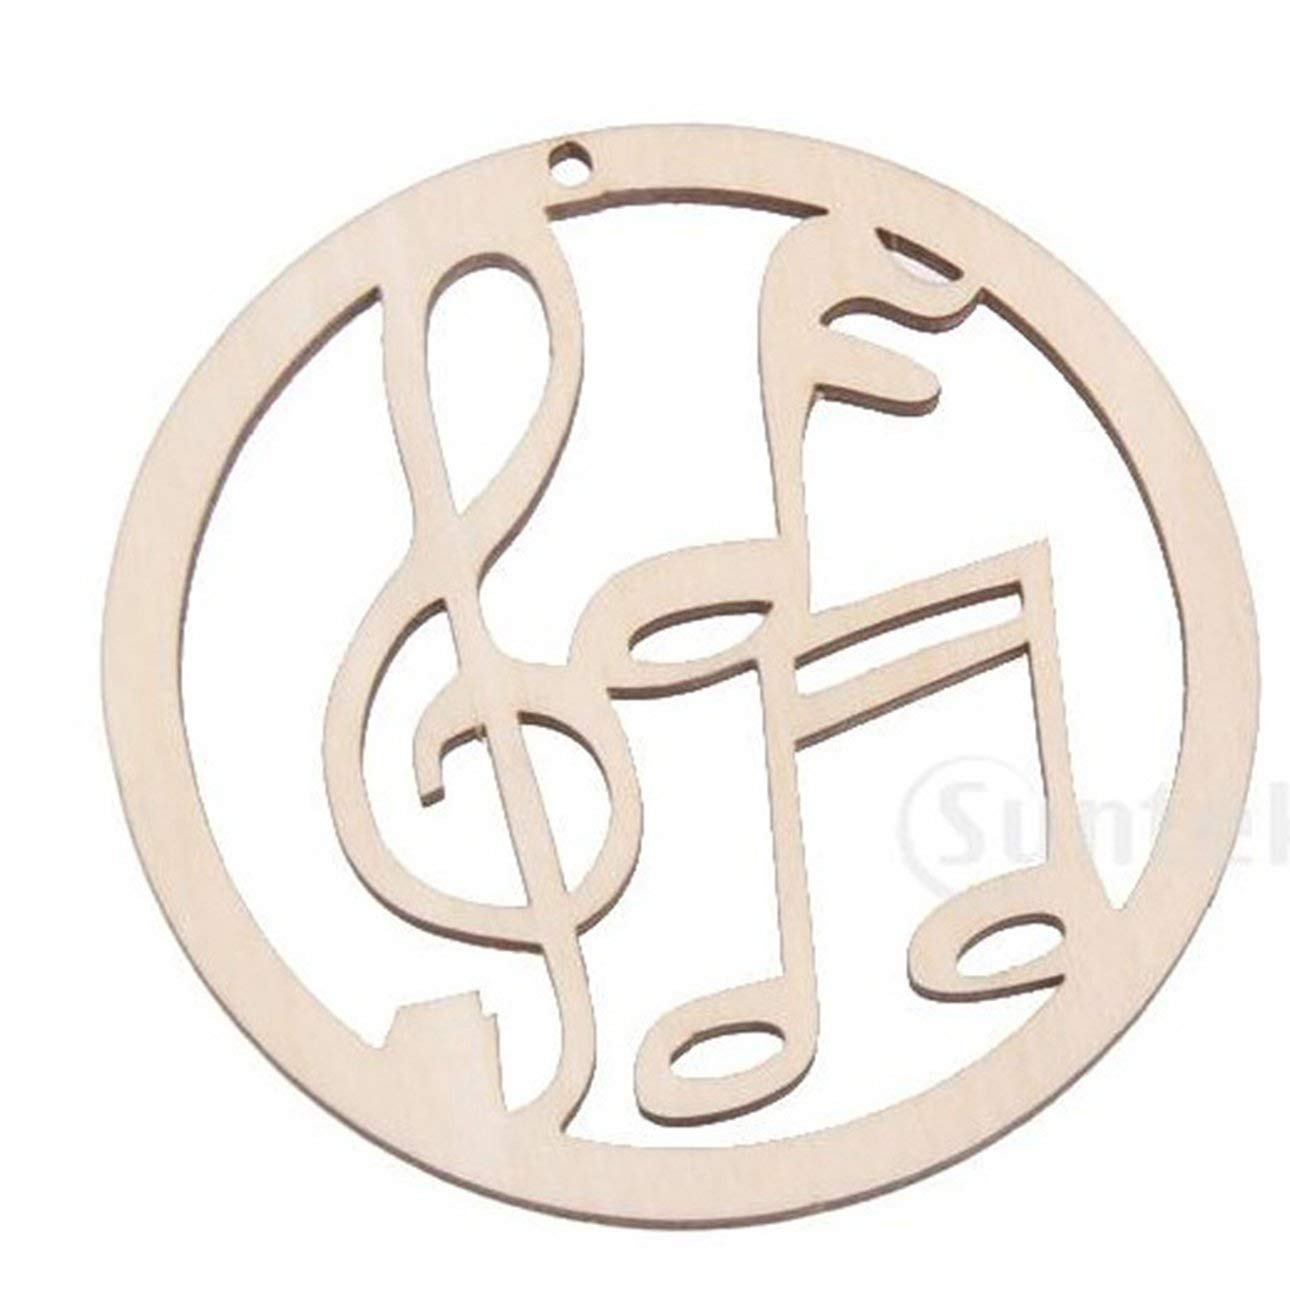 Liobaba 10pcs/Set Music Note Wood Embellishments Christmas Rustic Tree Hanging Ornament Home Party Decor Blank Gift Tags Crafts